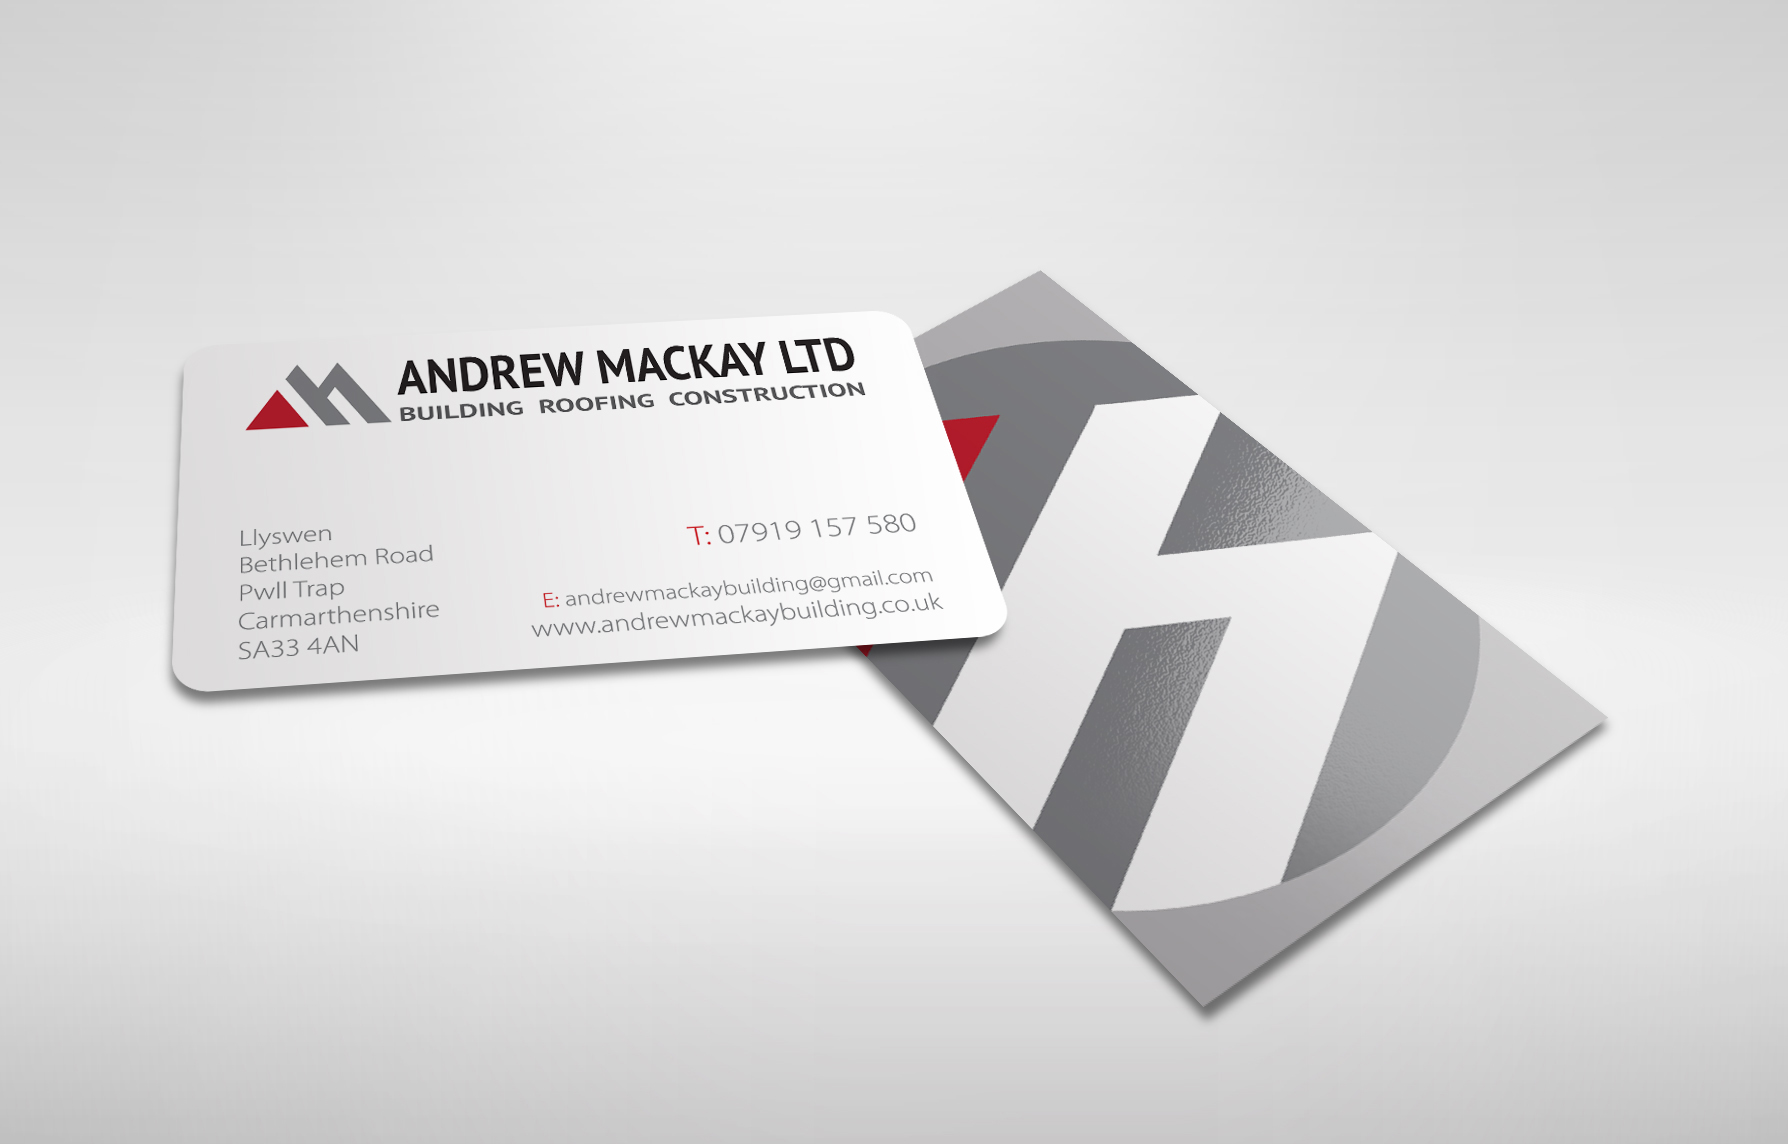 Graphic design design marque andrew mackay ltd reheart Image collections